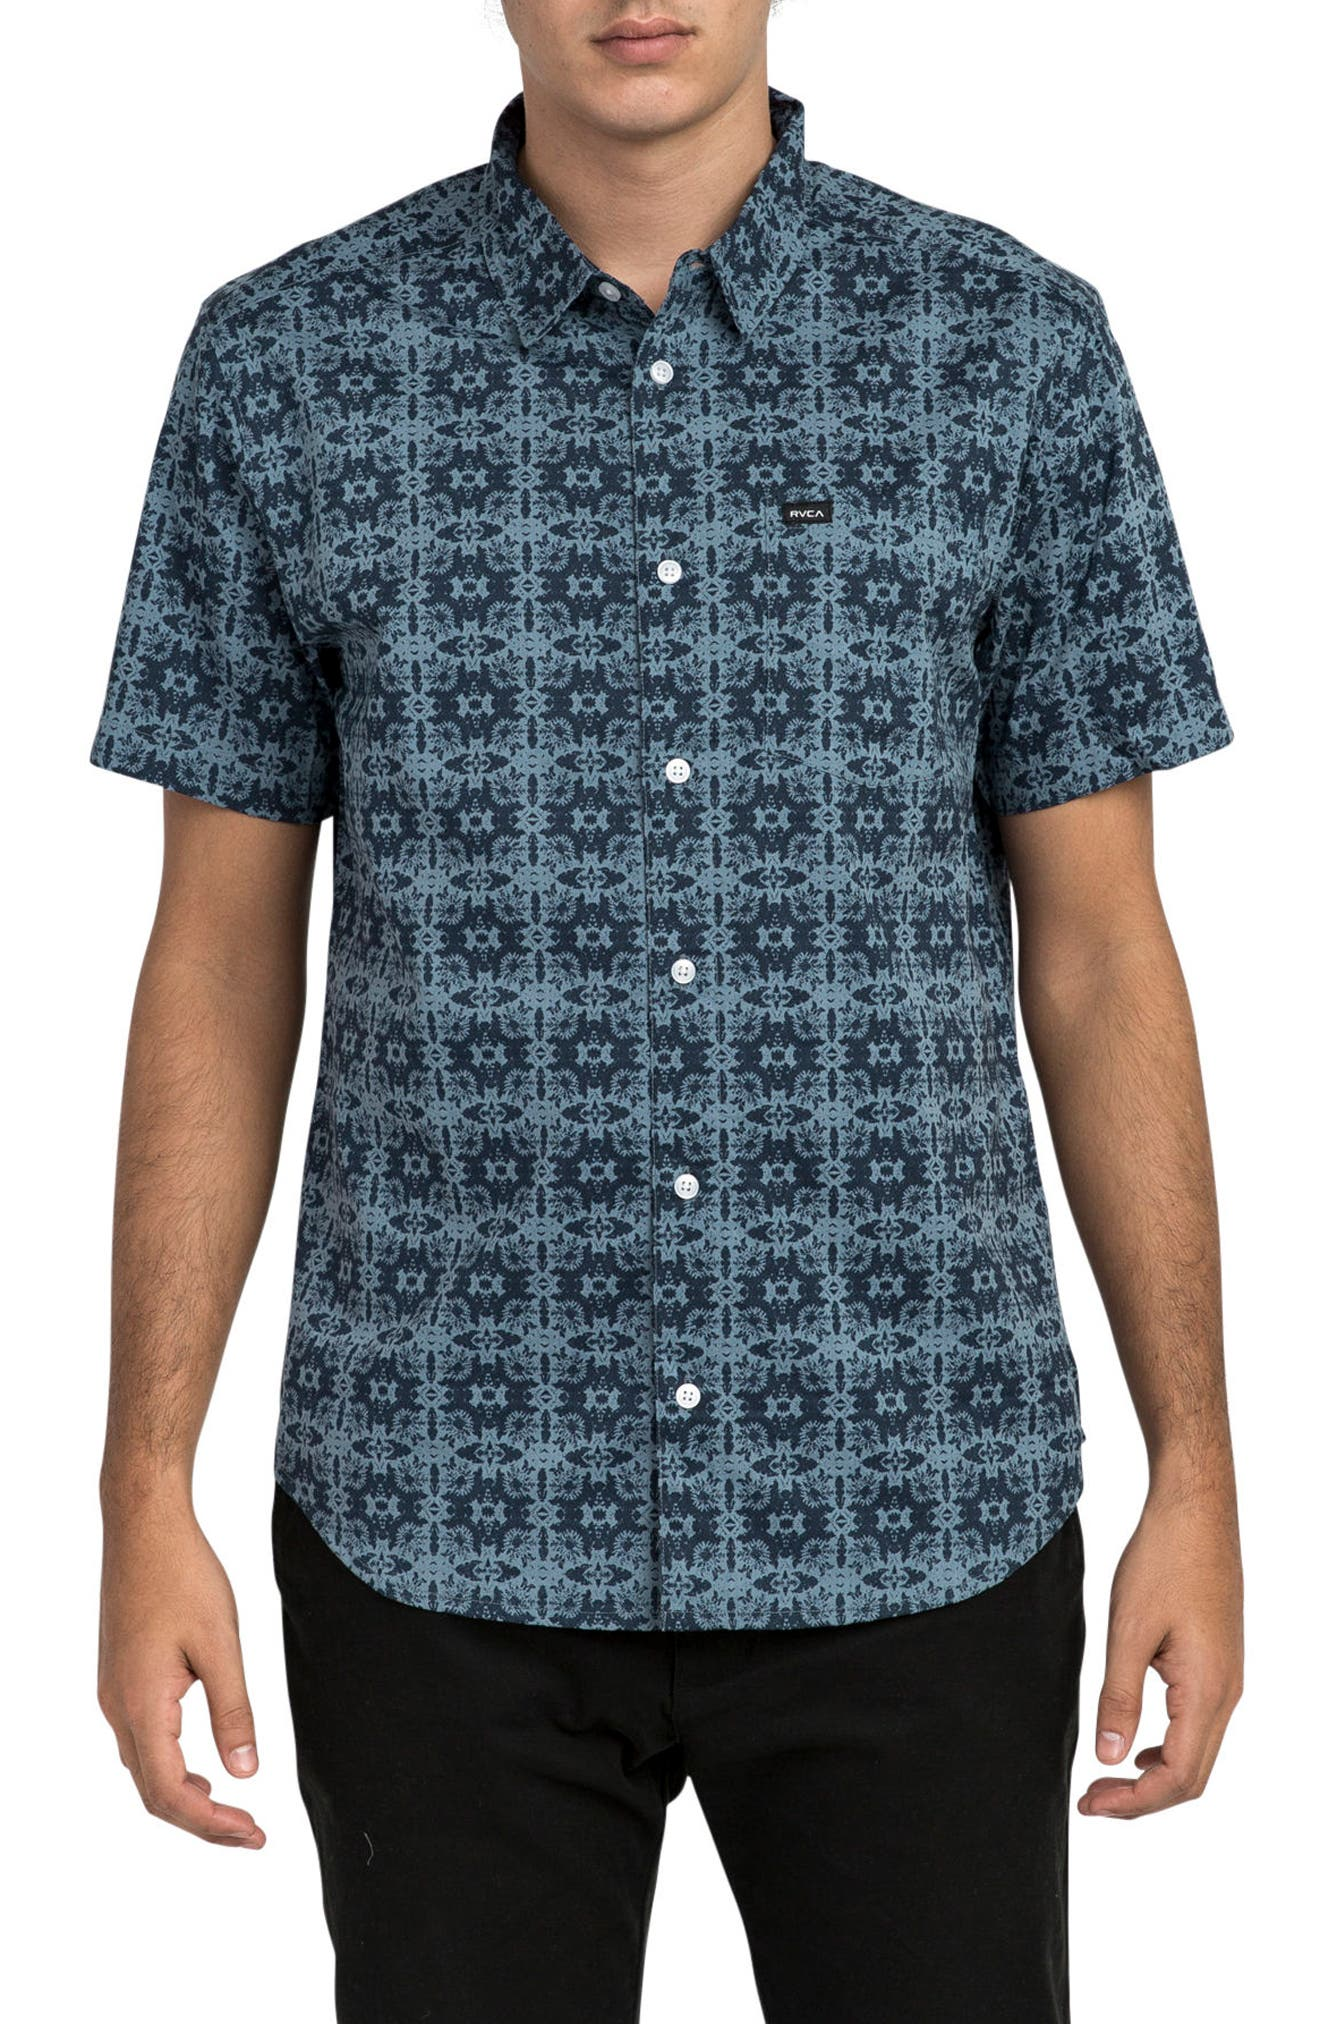 Visions Short Sleeve Shirt,                         Main,                         color, 407